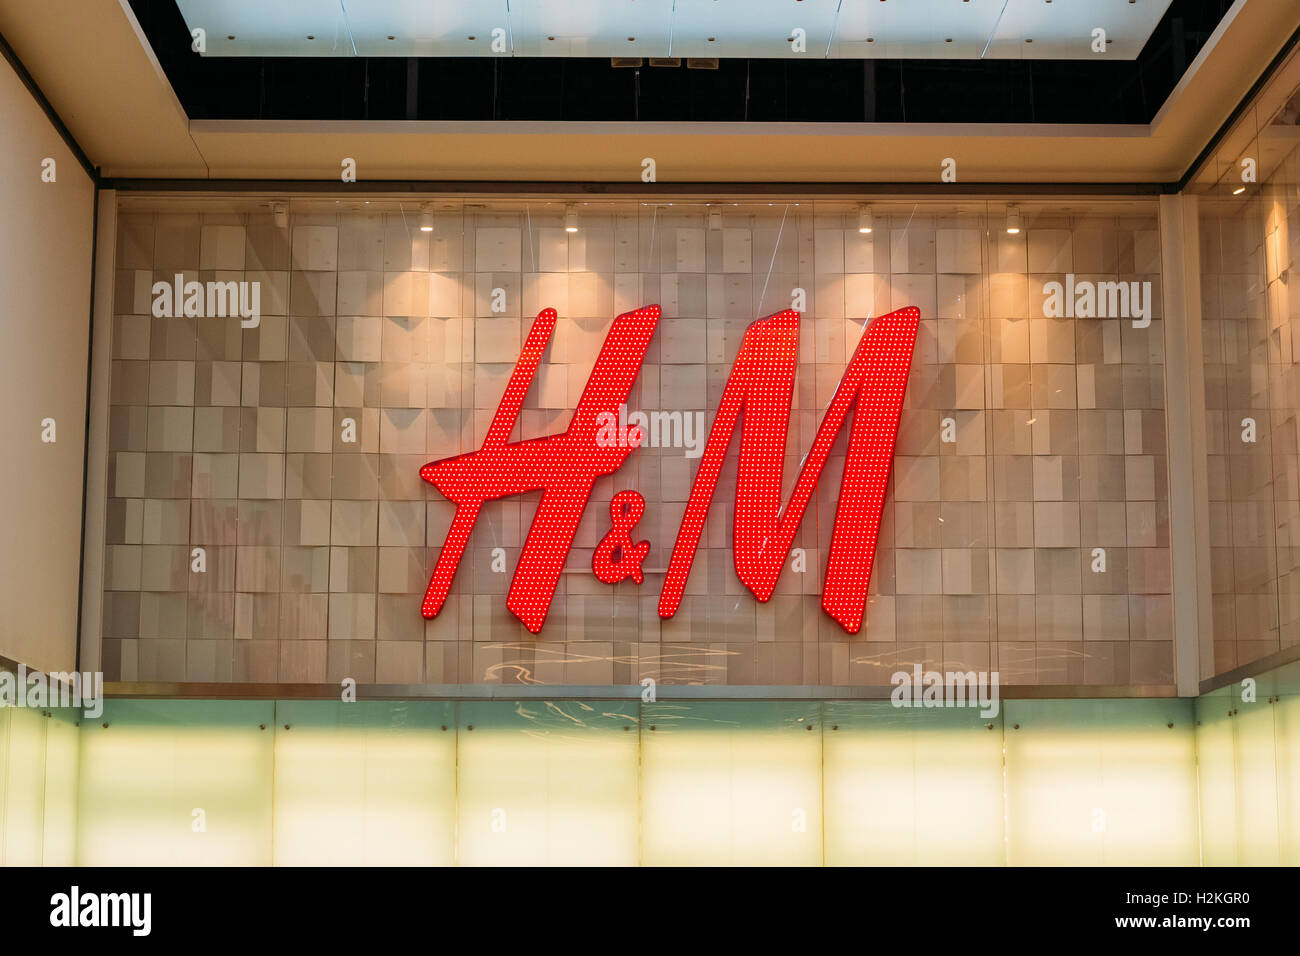 Vilnius, Lithuania - July 08, 2016: Close The Illuminated Red Logotype H&M Of Hennes & Mauritz Brand At - Stock Image